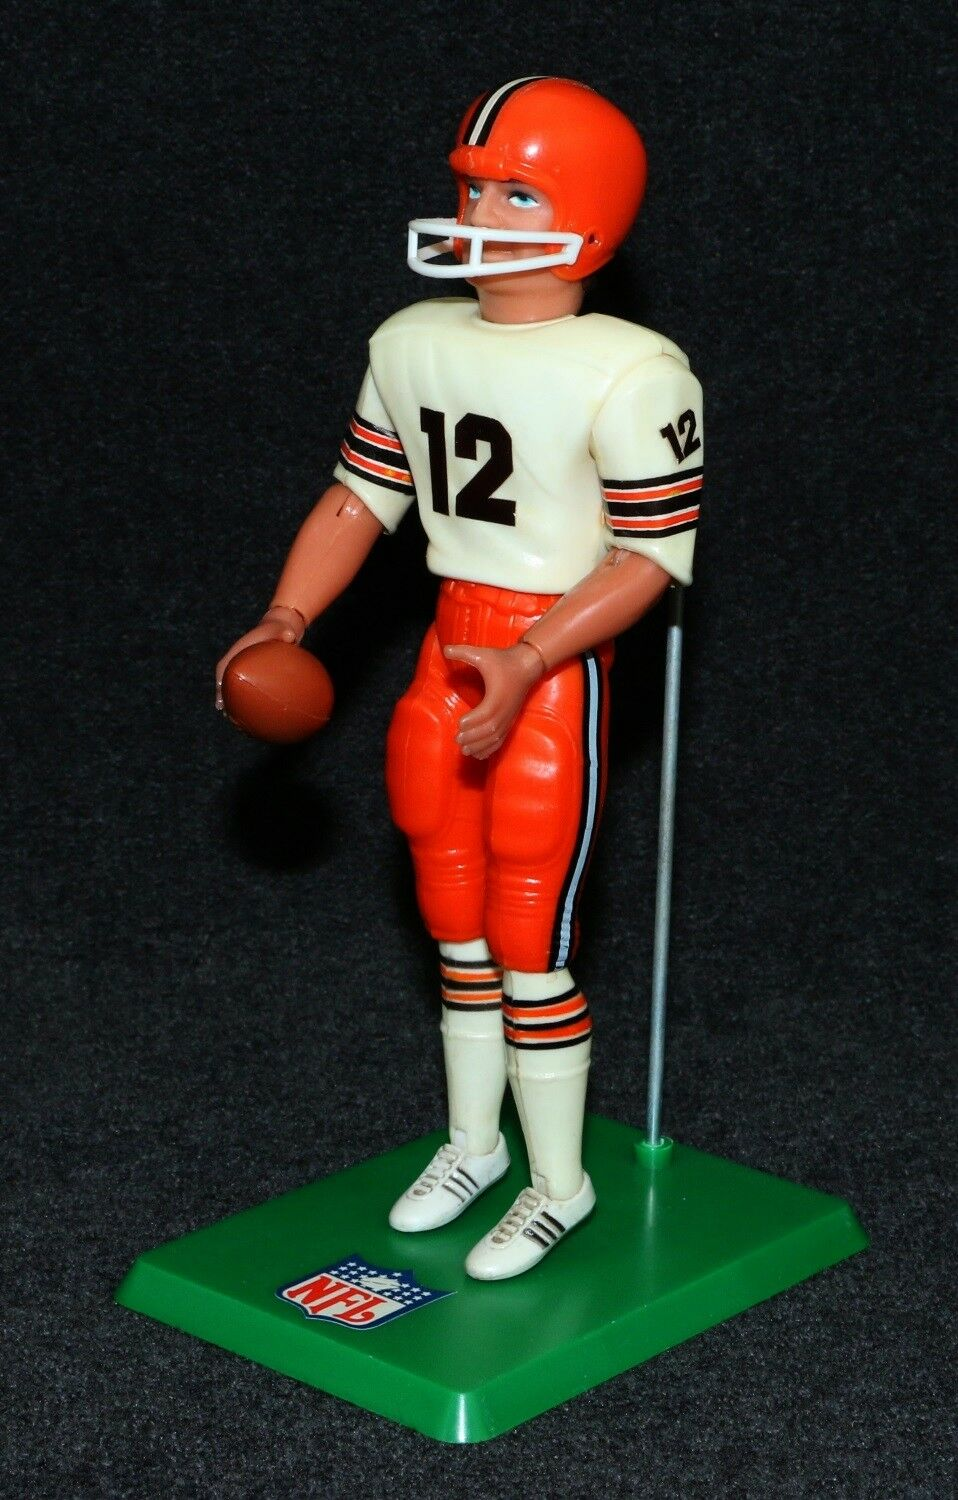 NFL Action Team Mate 1977 Football Player Cleveland brauns